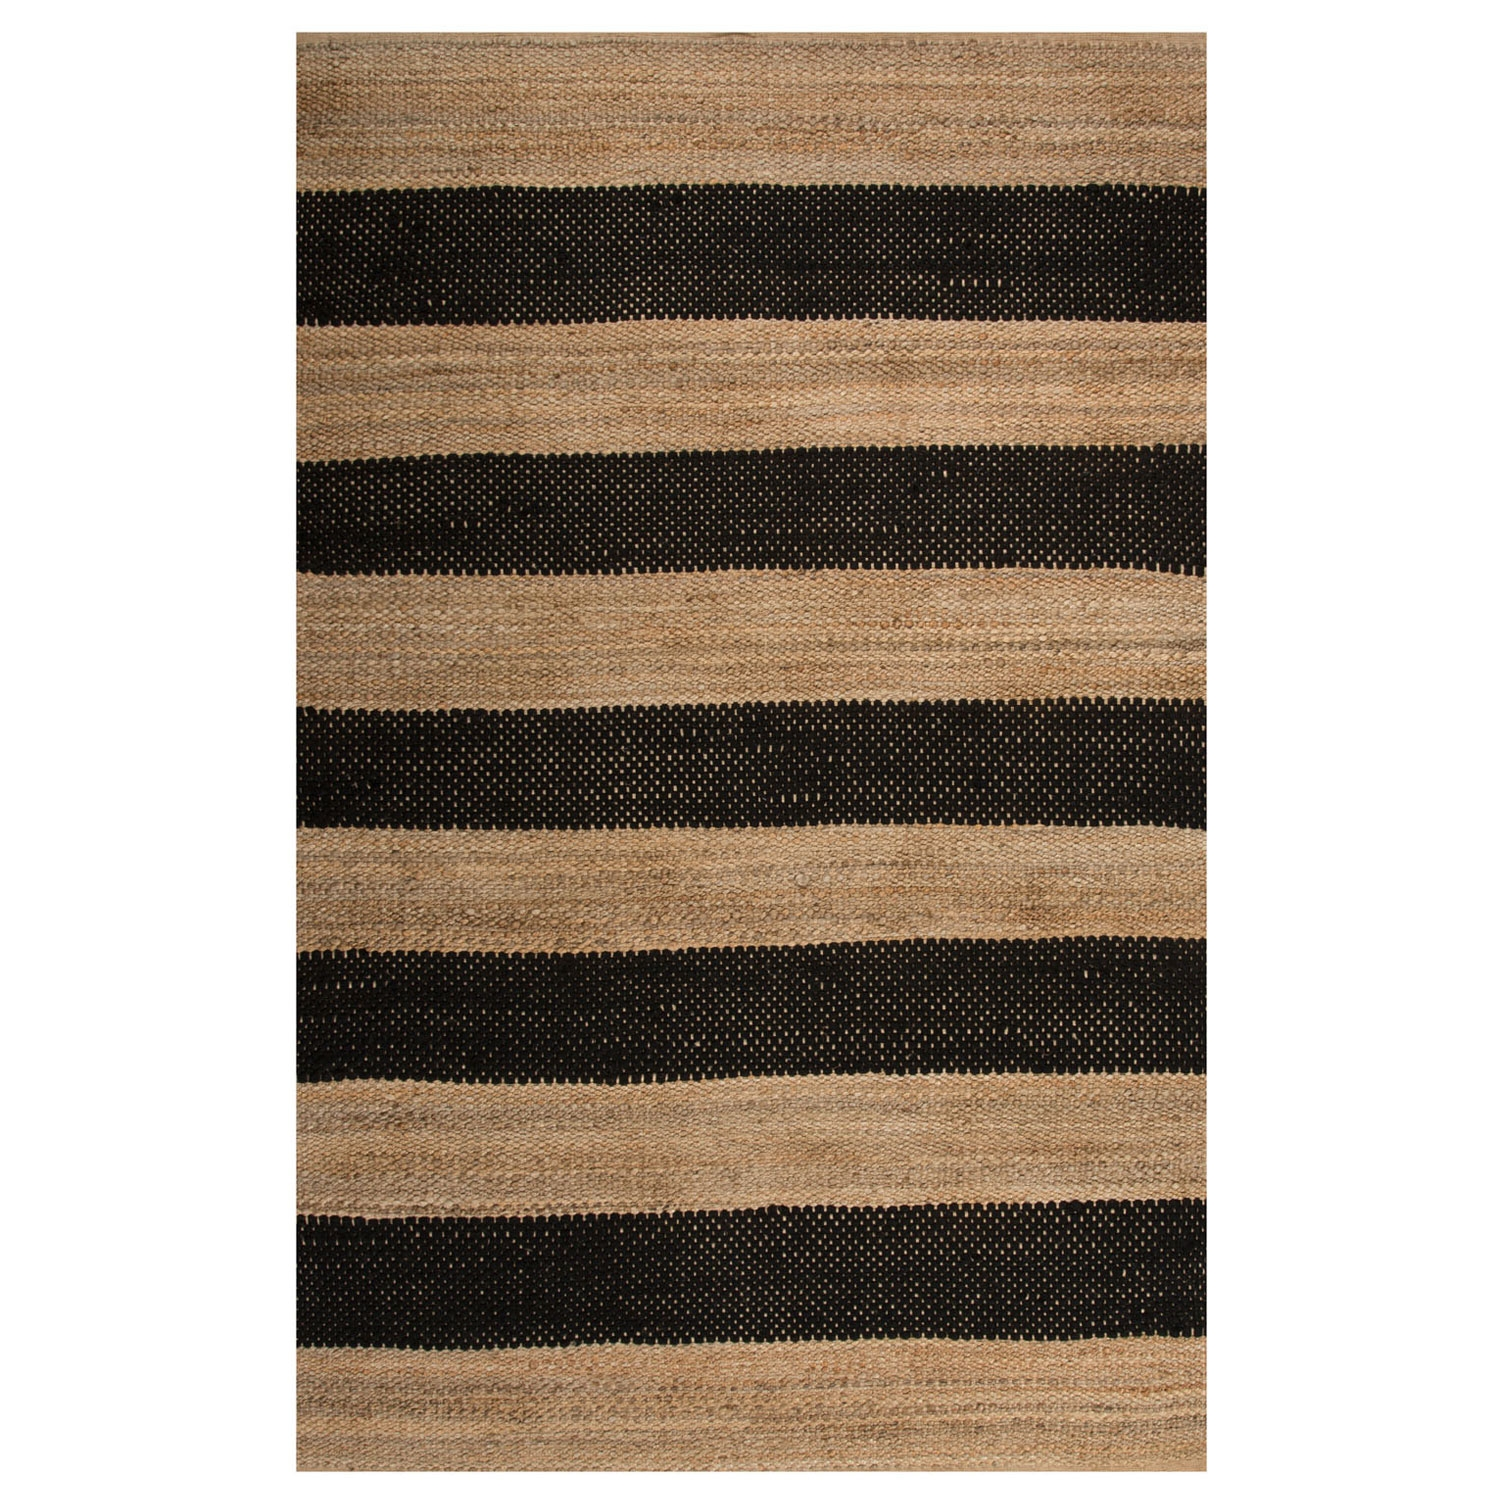 Striped Rugs Browse Our Range Of Striped Area Rugs Varied Colors Intended For Striped Mats (Image 13 of 15)